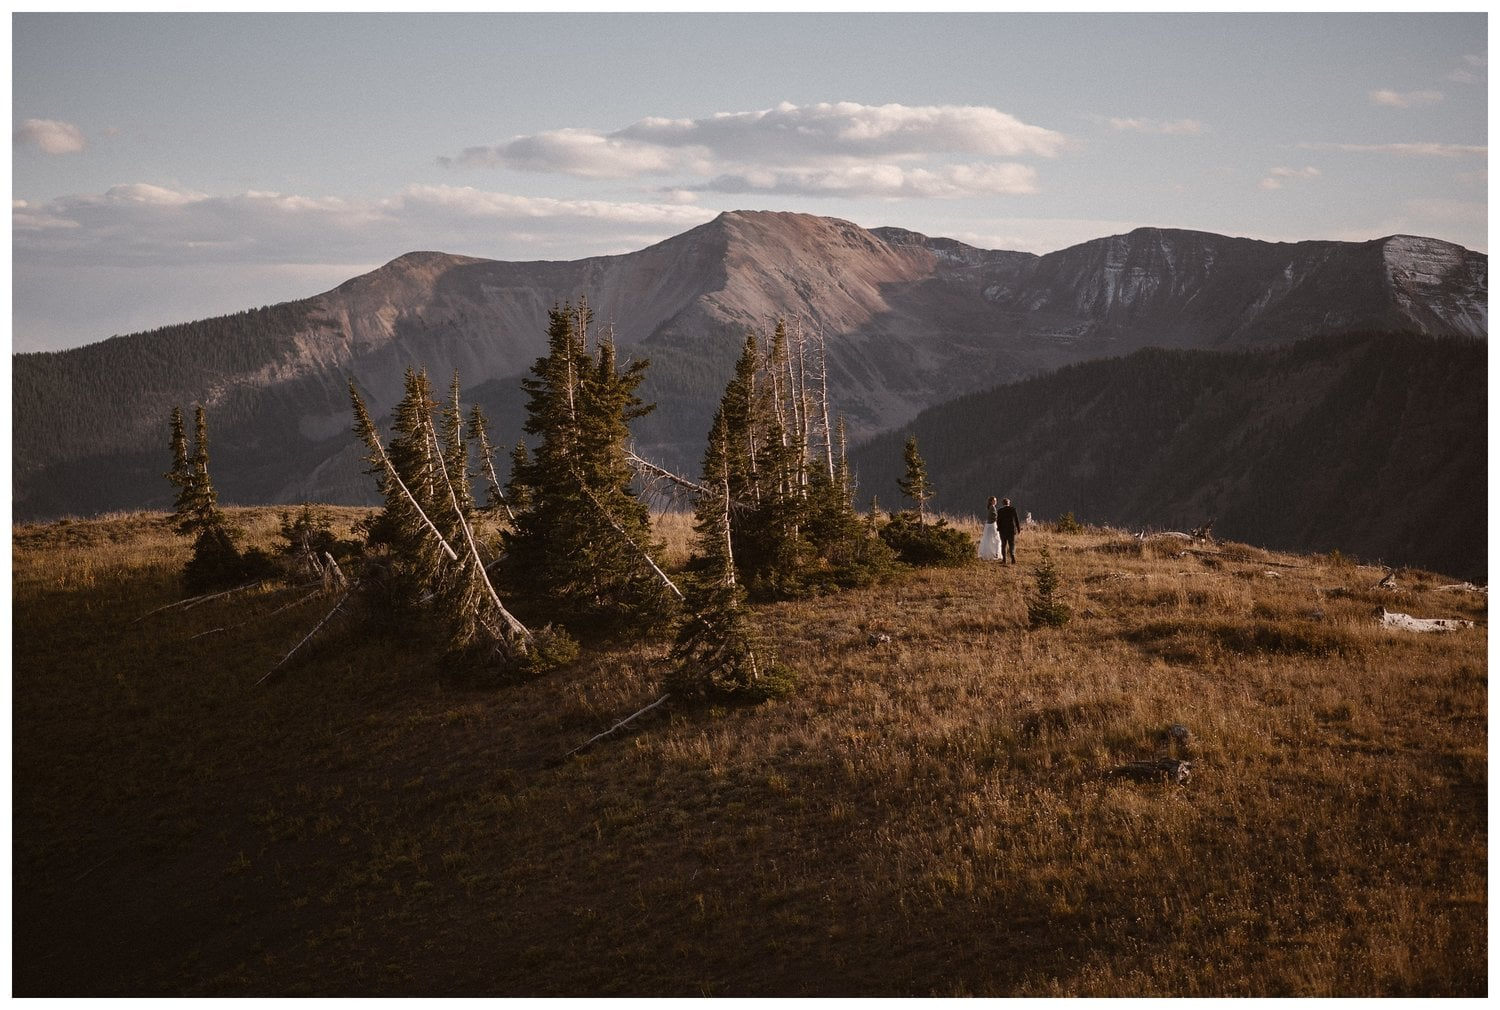 A bride and groom stand in the middle of the mountains with fallen trees surrounding them.